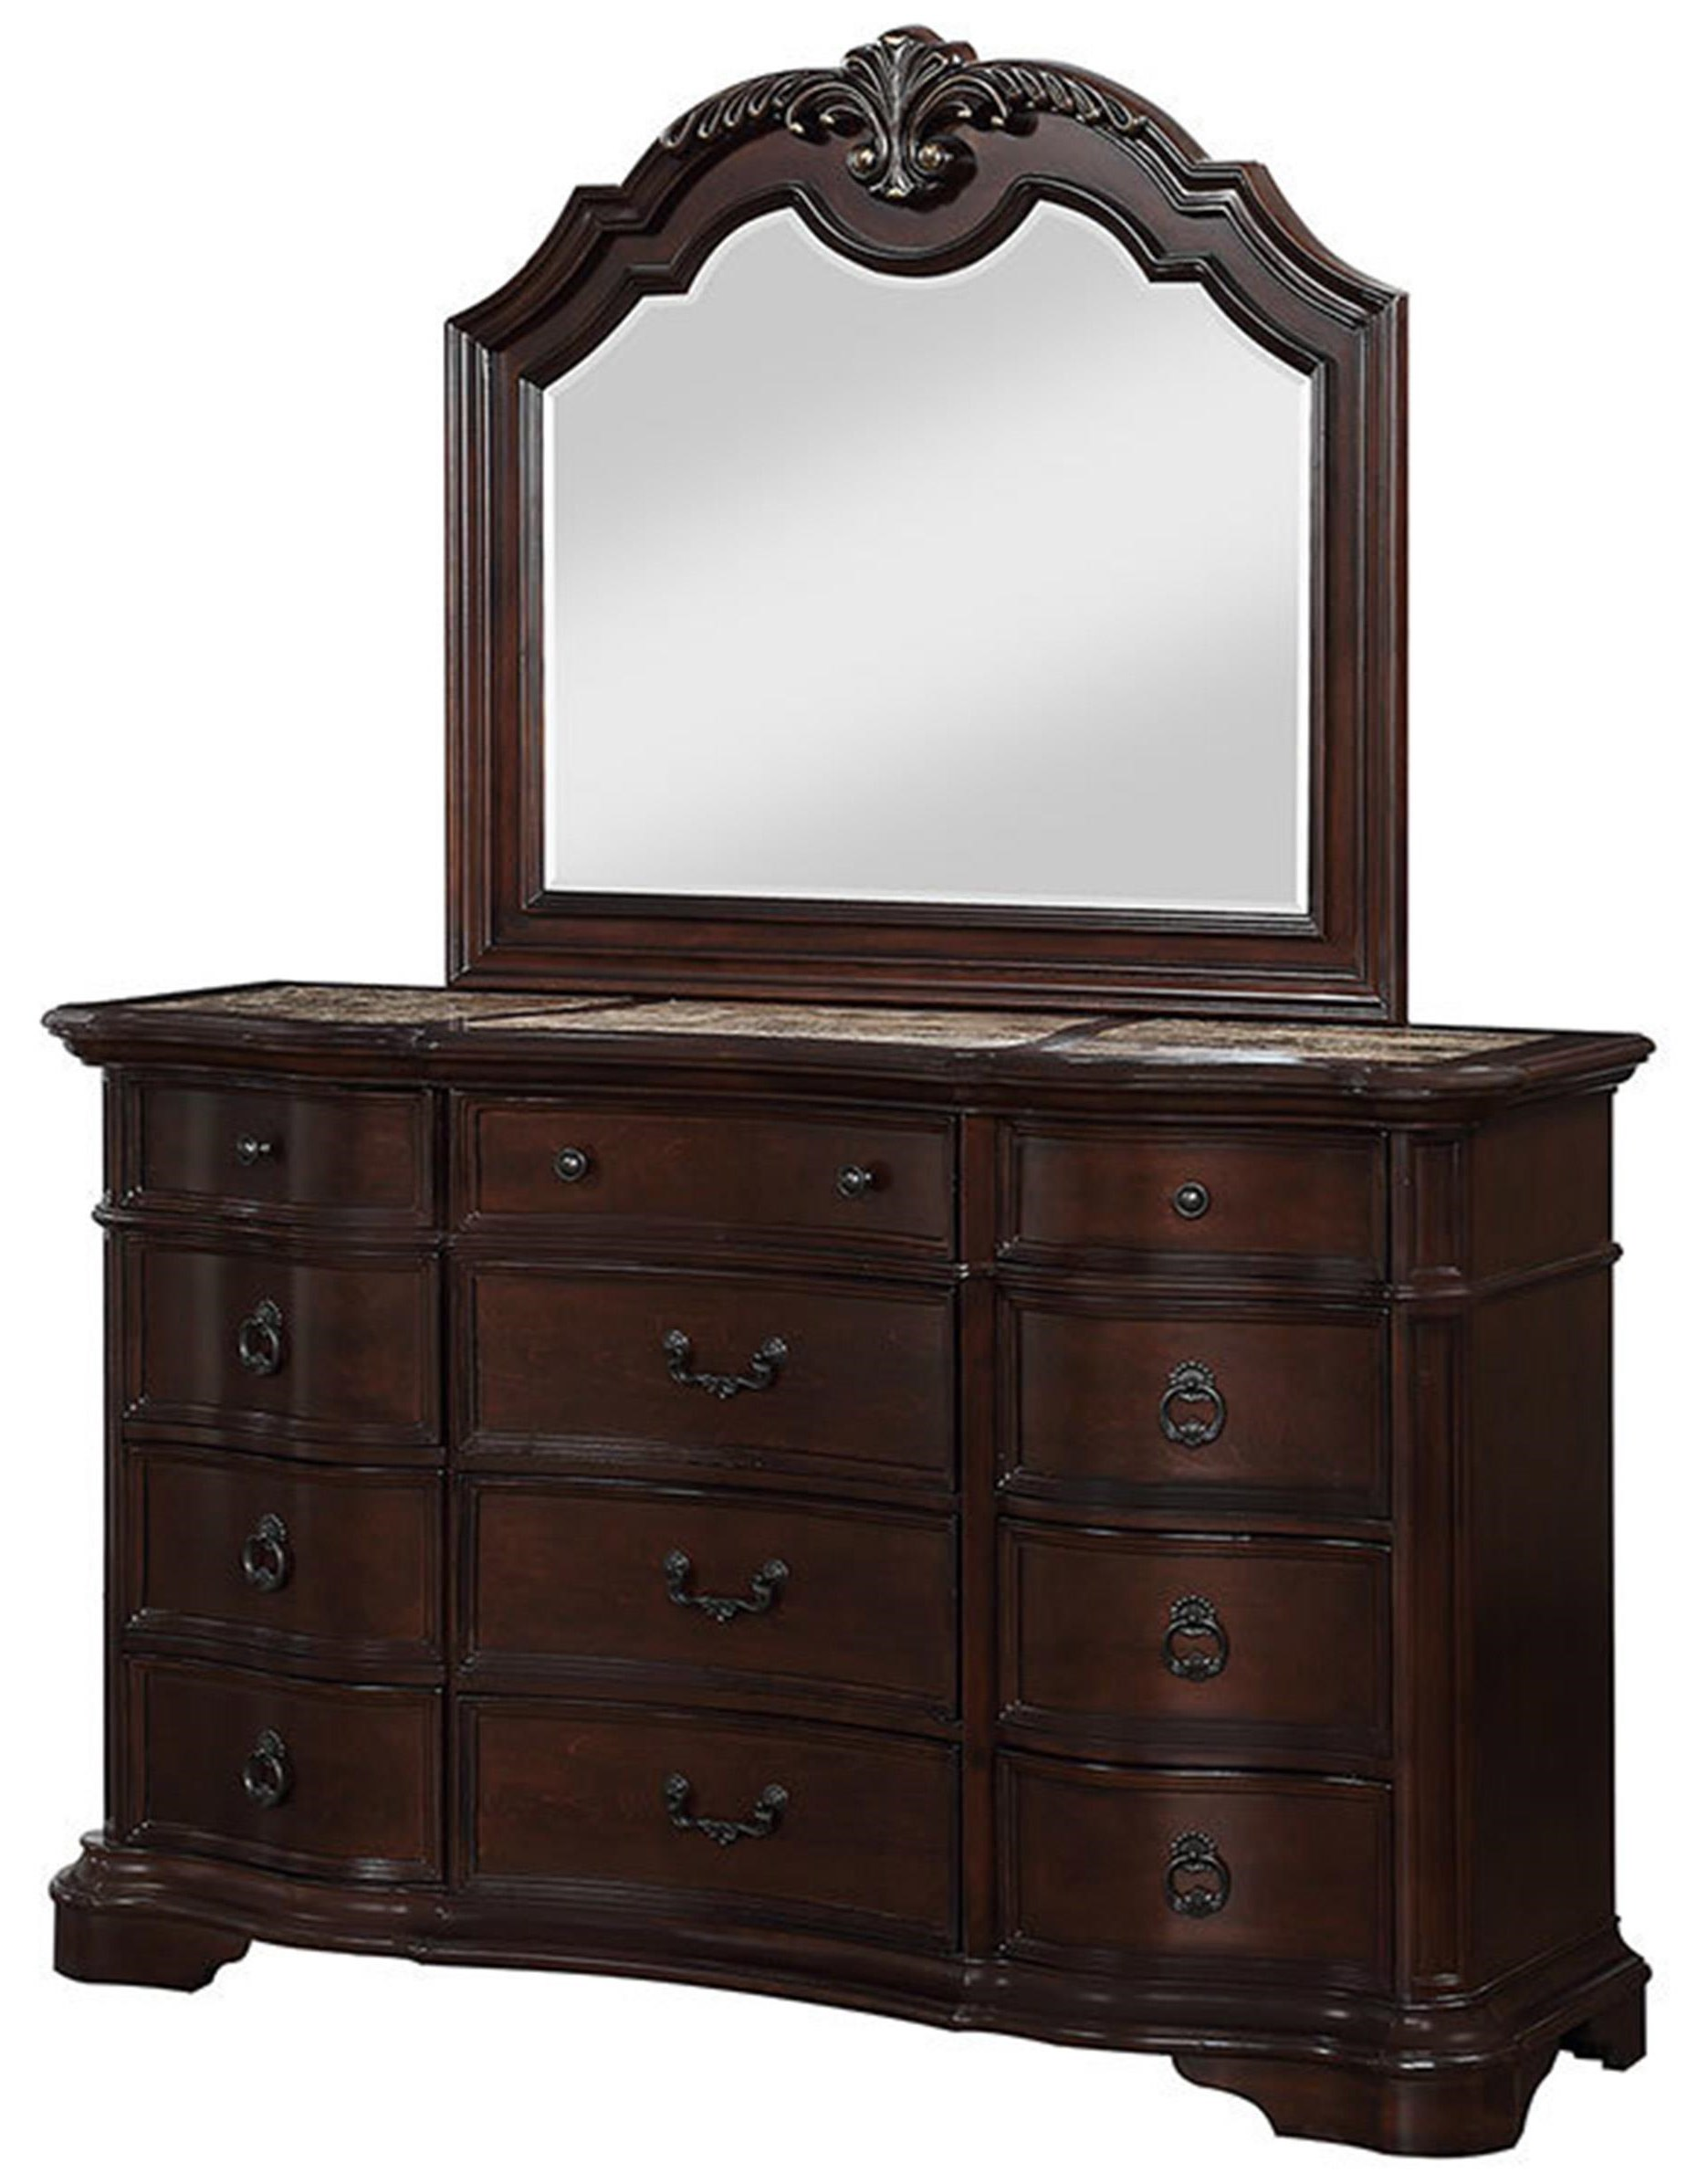 Traditional 12 Drawer Dresser and Mirror